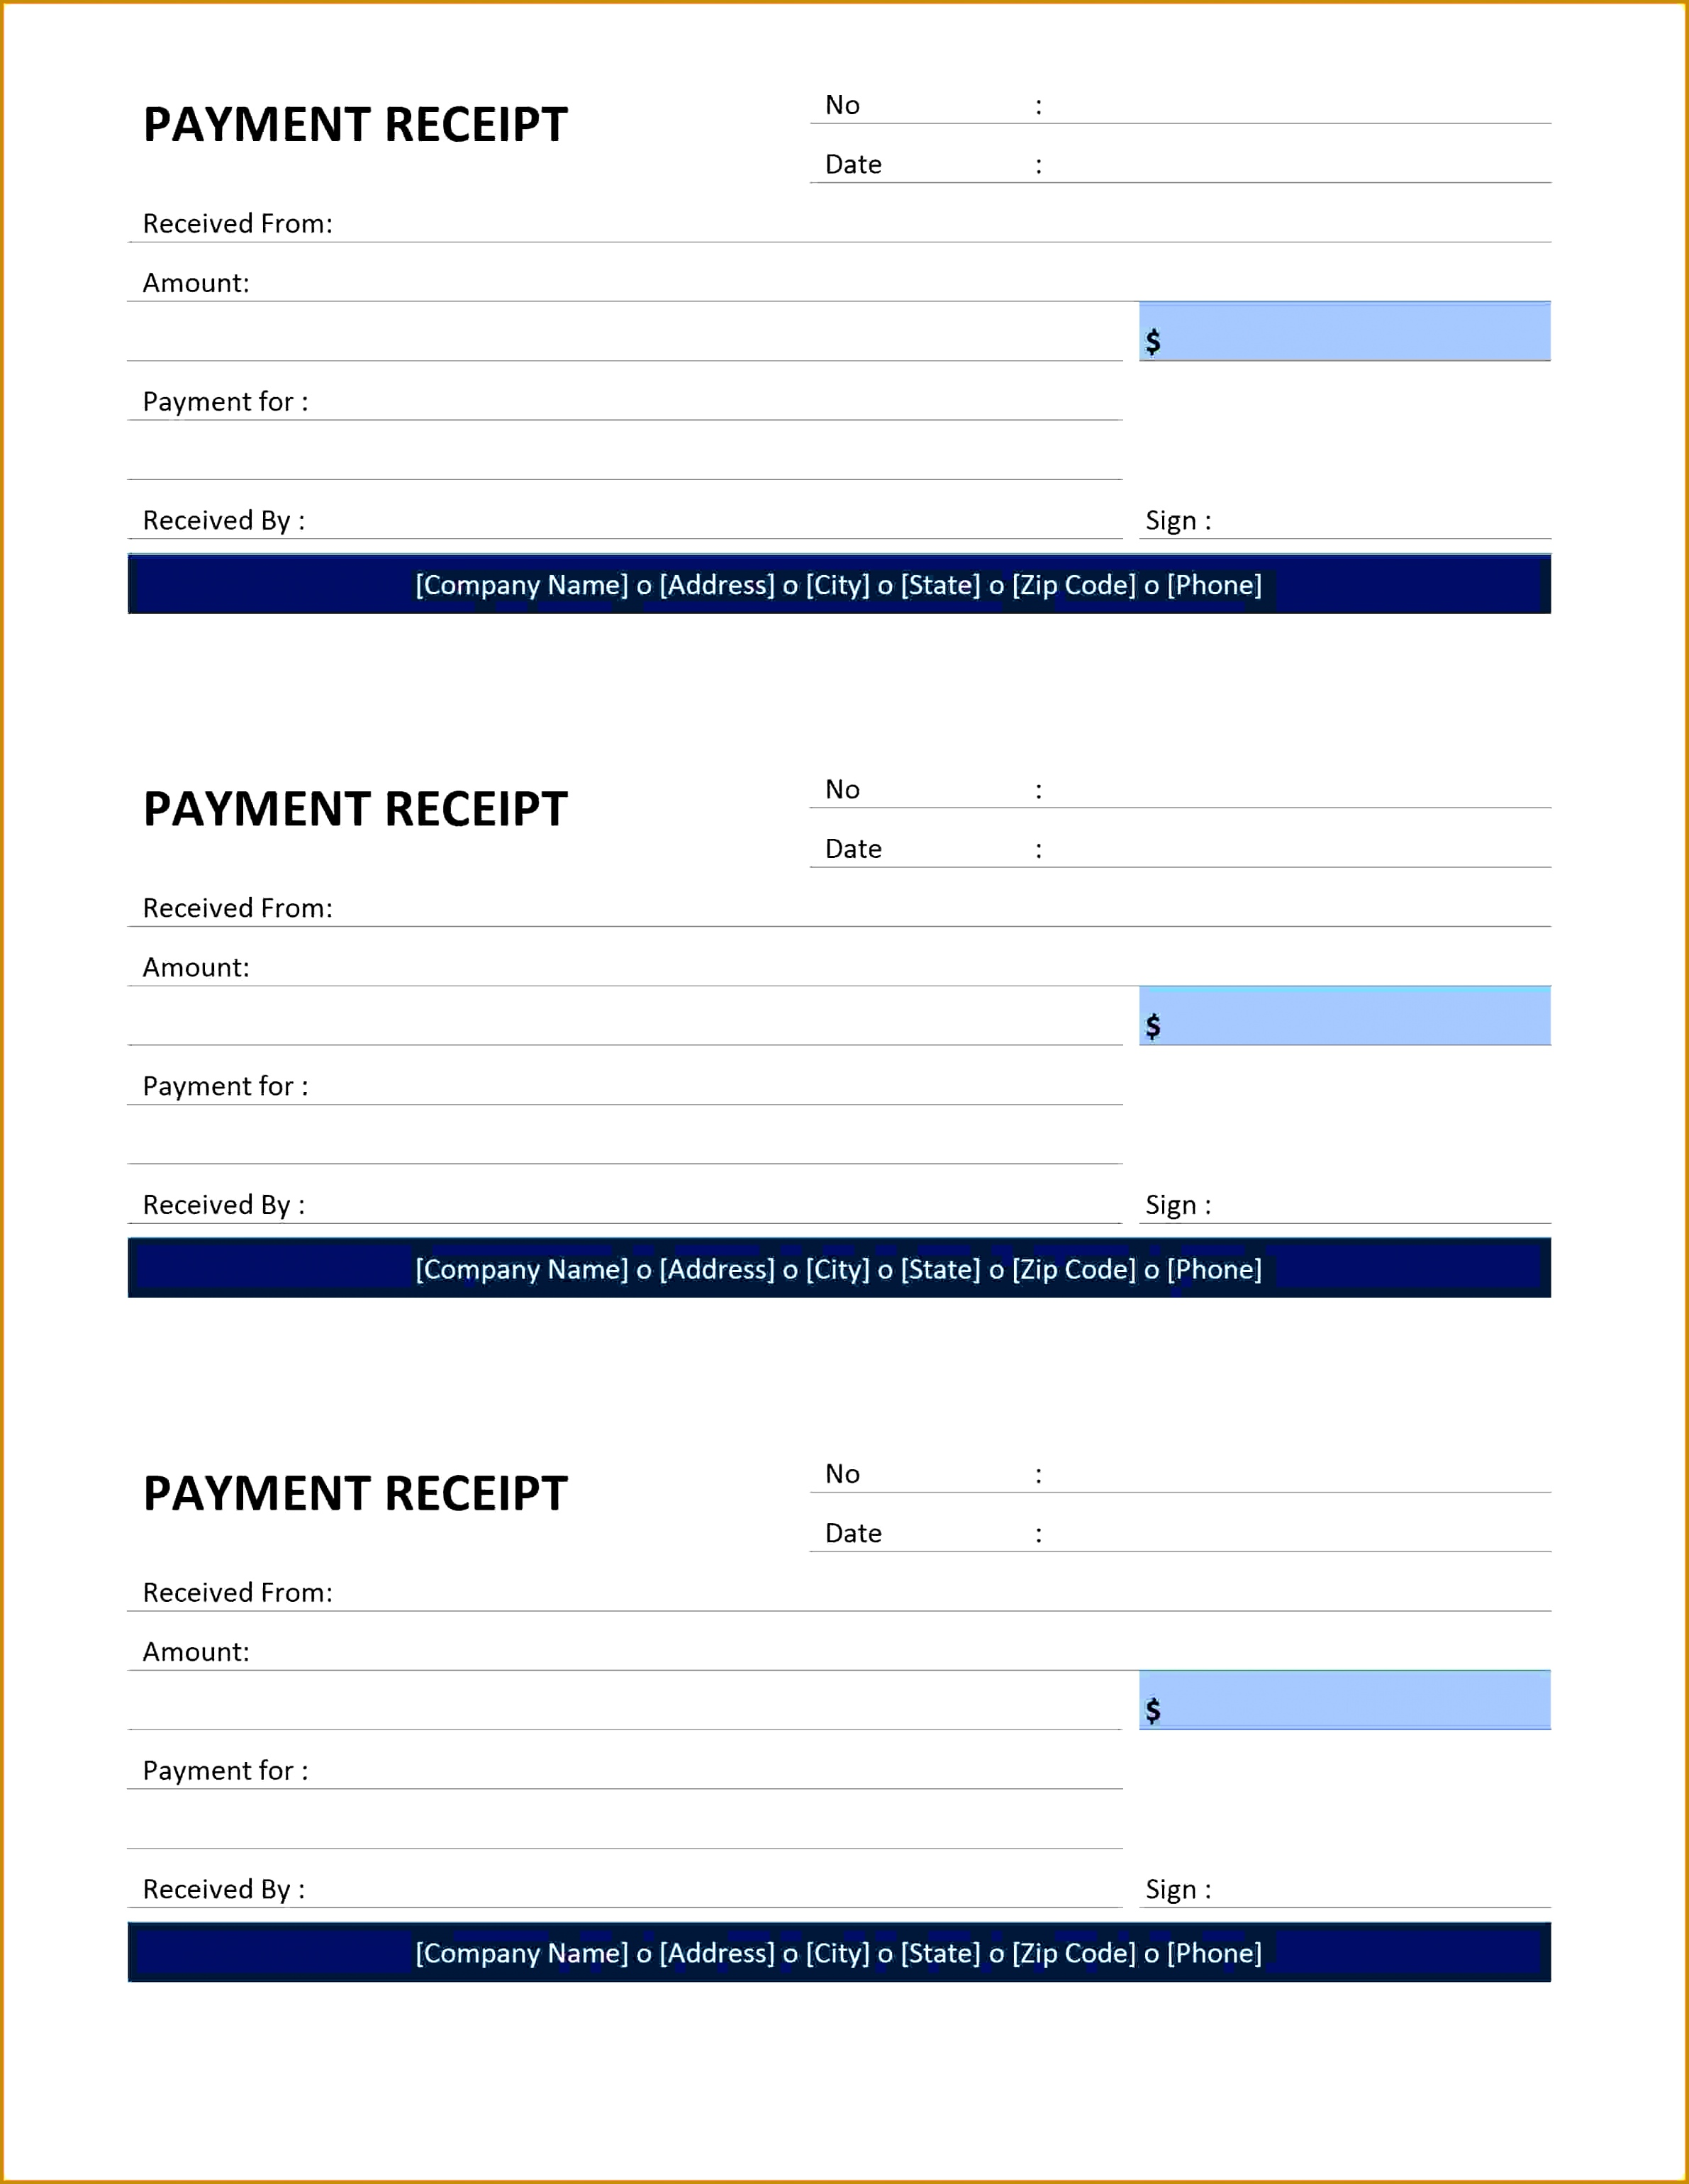 Daycare Receipt Template Gallery Templates Design Ideas Word Receipt Templates Payment Receipt1 Daycare Receipt Template 30802382